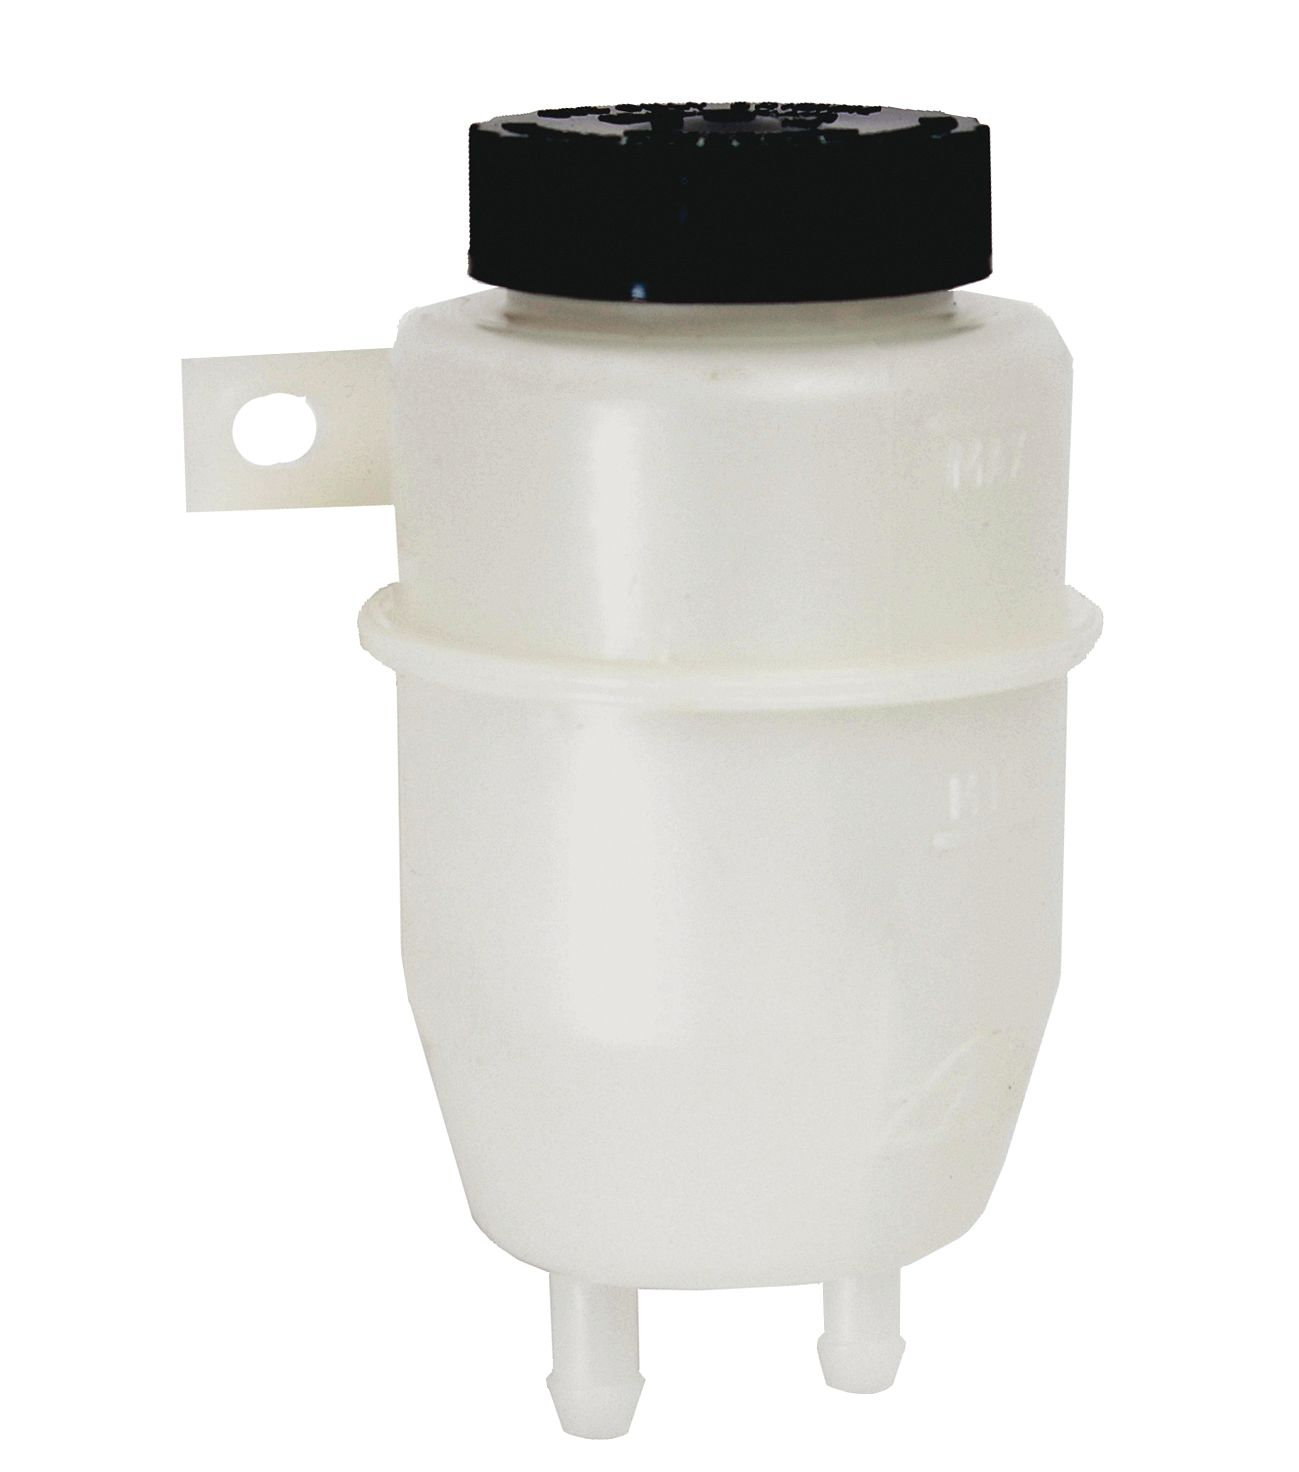 DEUTZ-FAHR BRAKE FLUID RESERVOIR 38252